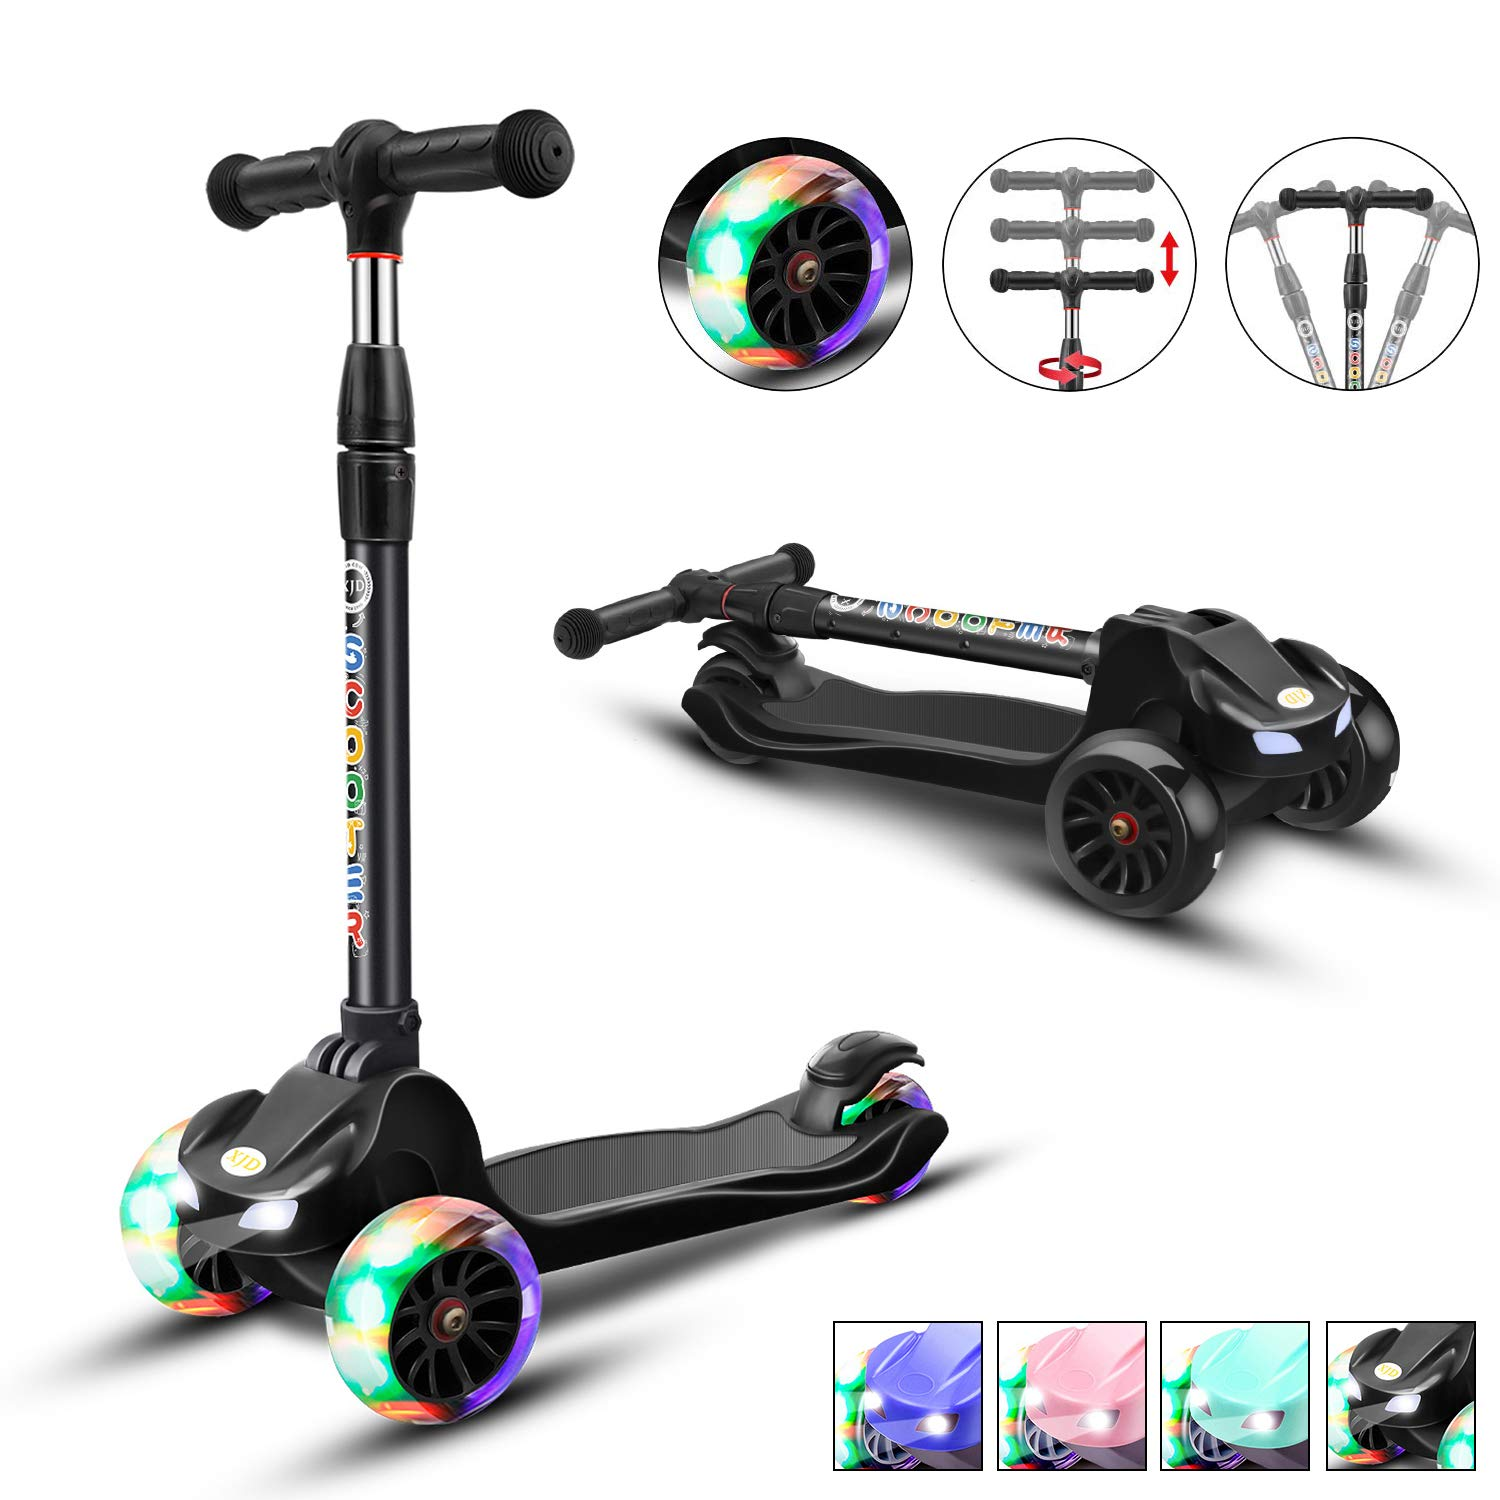 XJD Kick Scooter for Kids 3 Wheel Scooter for Toddlers Girls Boys Toddler Scooter 4 Adjustable Height, Lean to Steer with PU LED Light Up Wheels for Children from 3 to 14 Years Old, Black by XJD